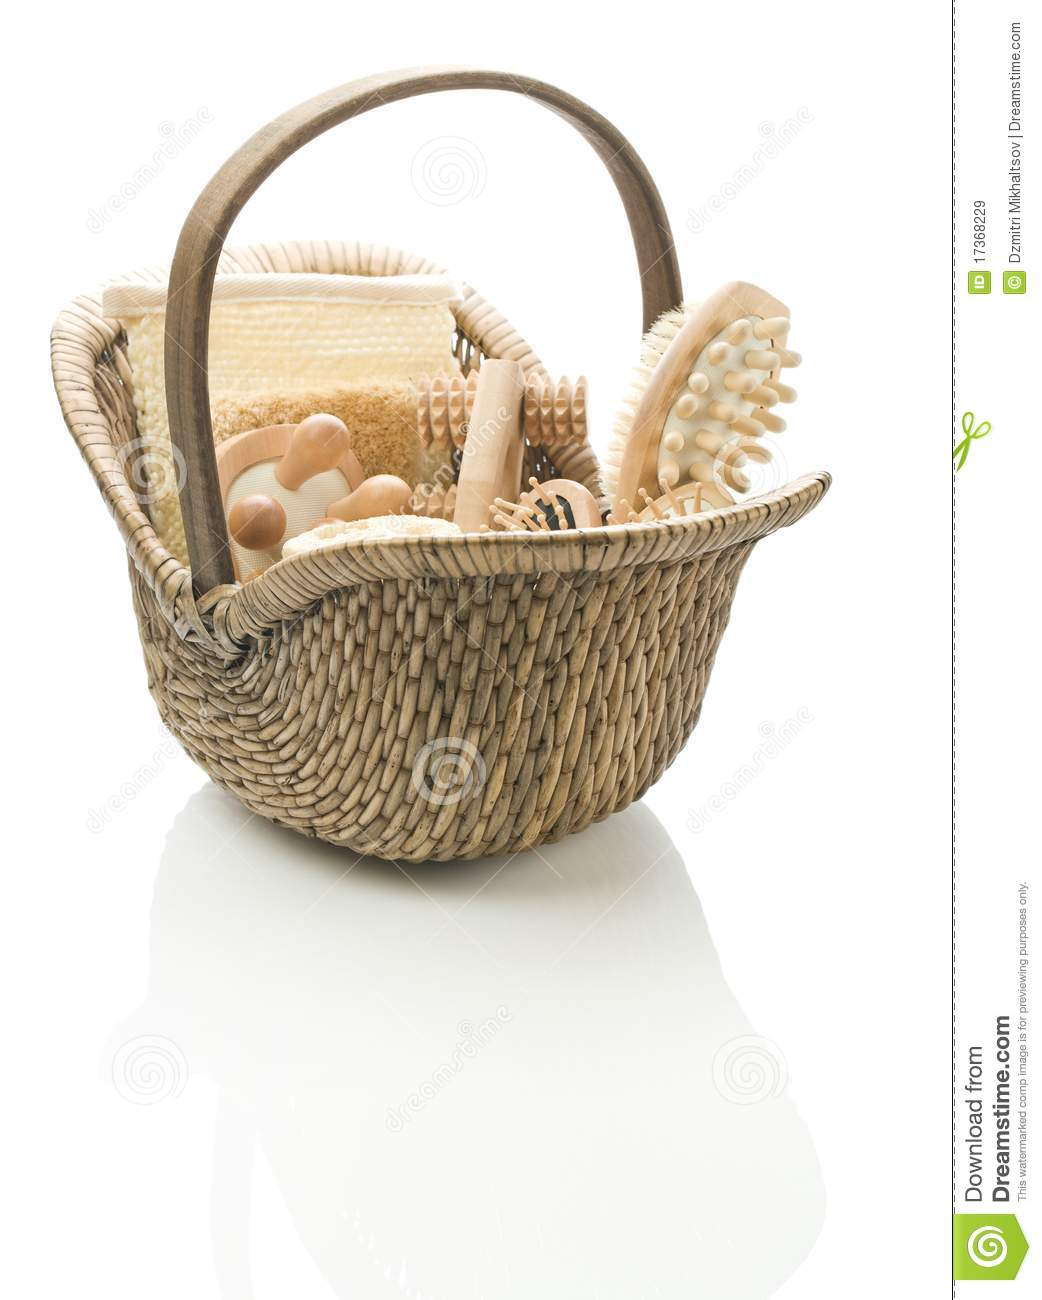 Basket with bath accessories royalty free stock images for Basket bathroom accessories